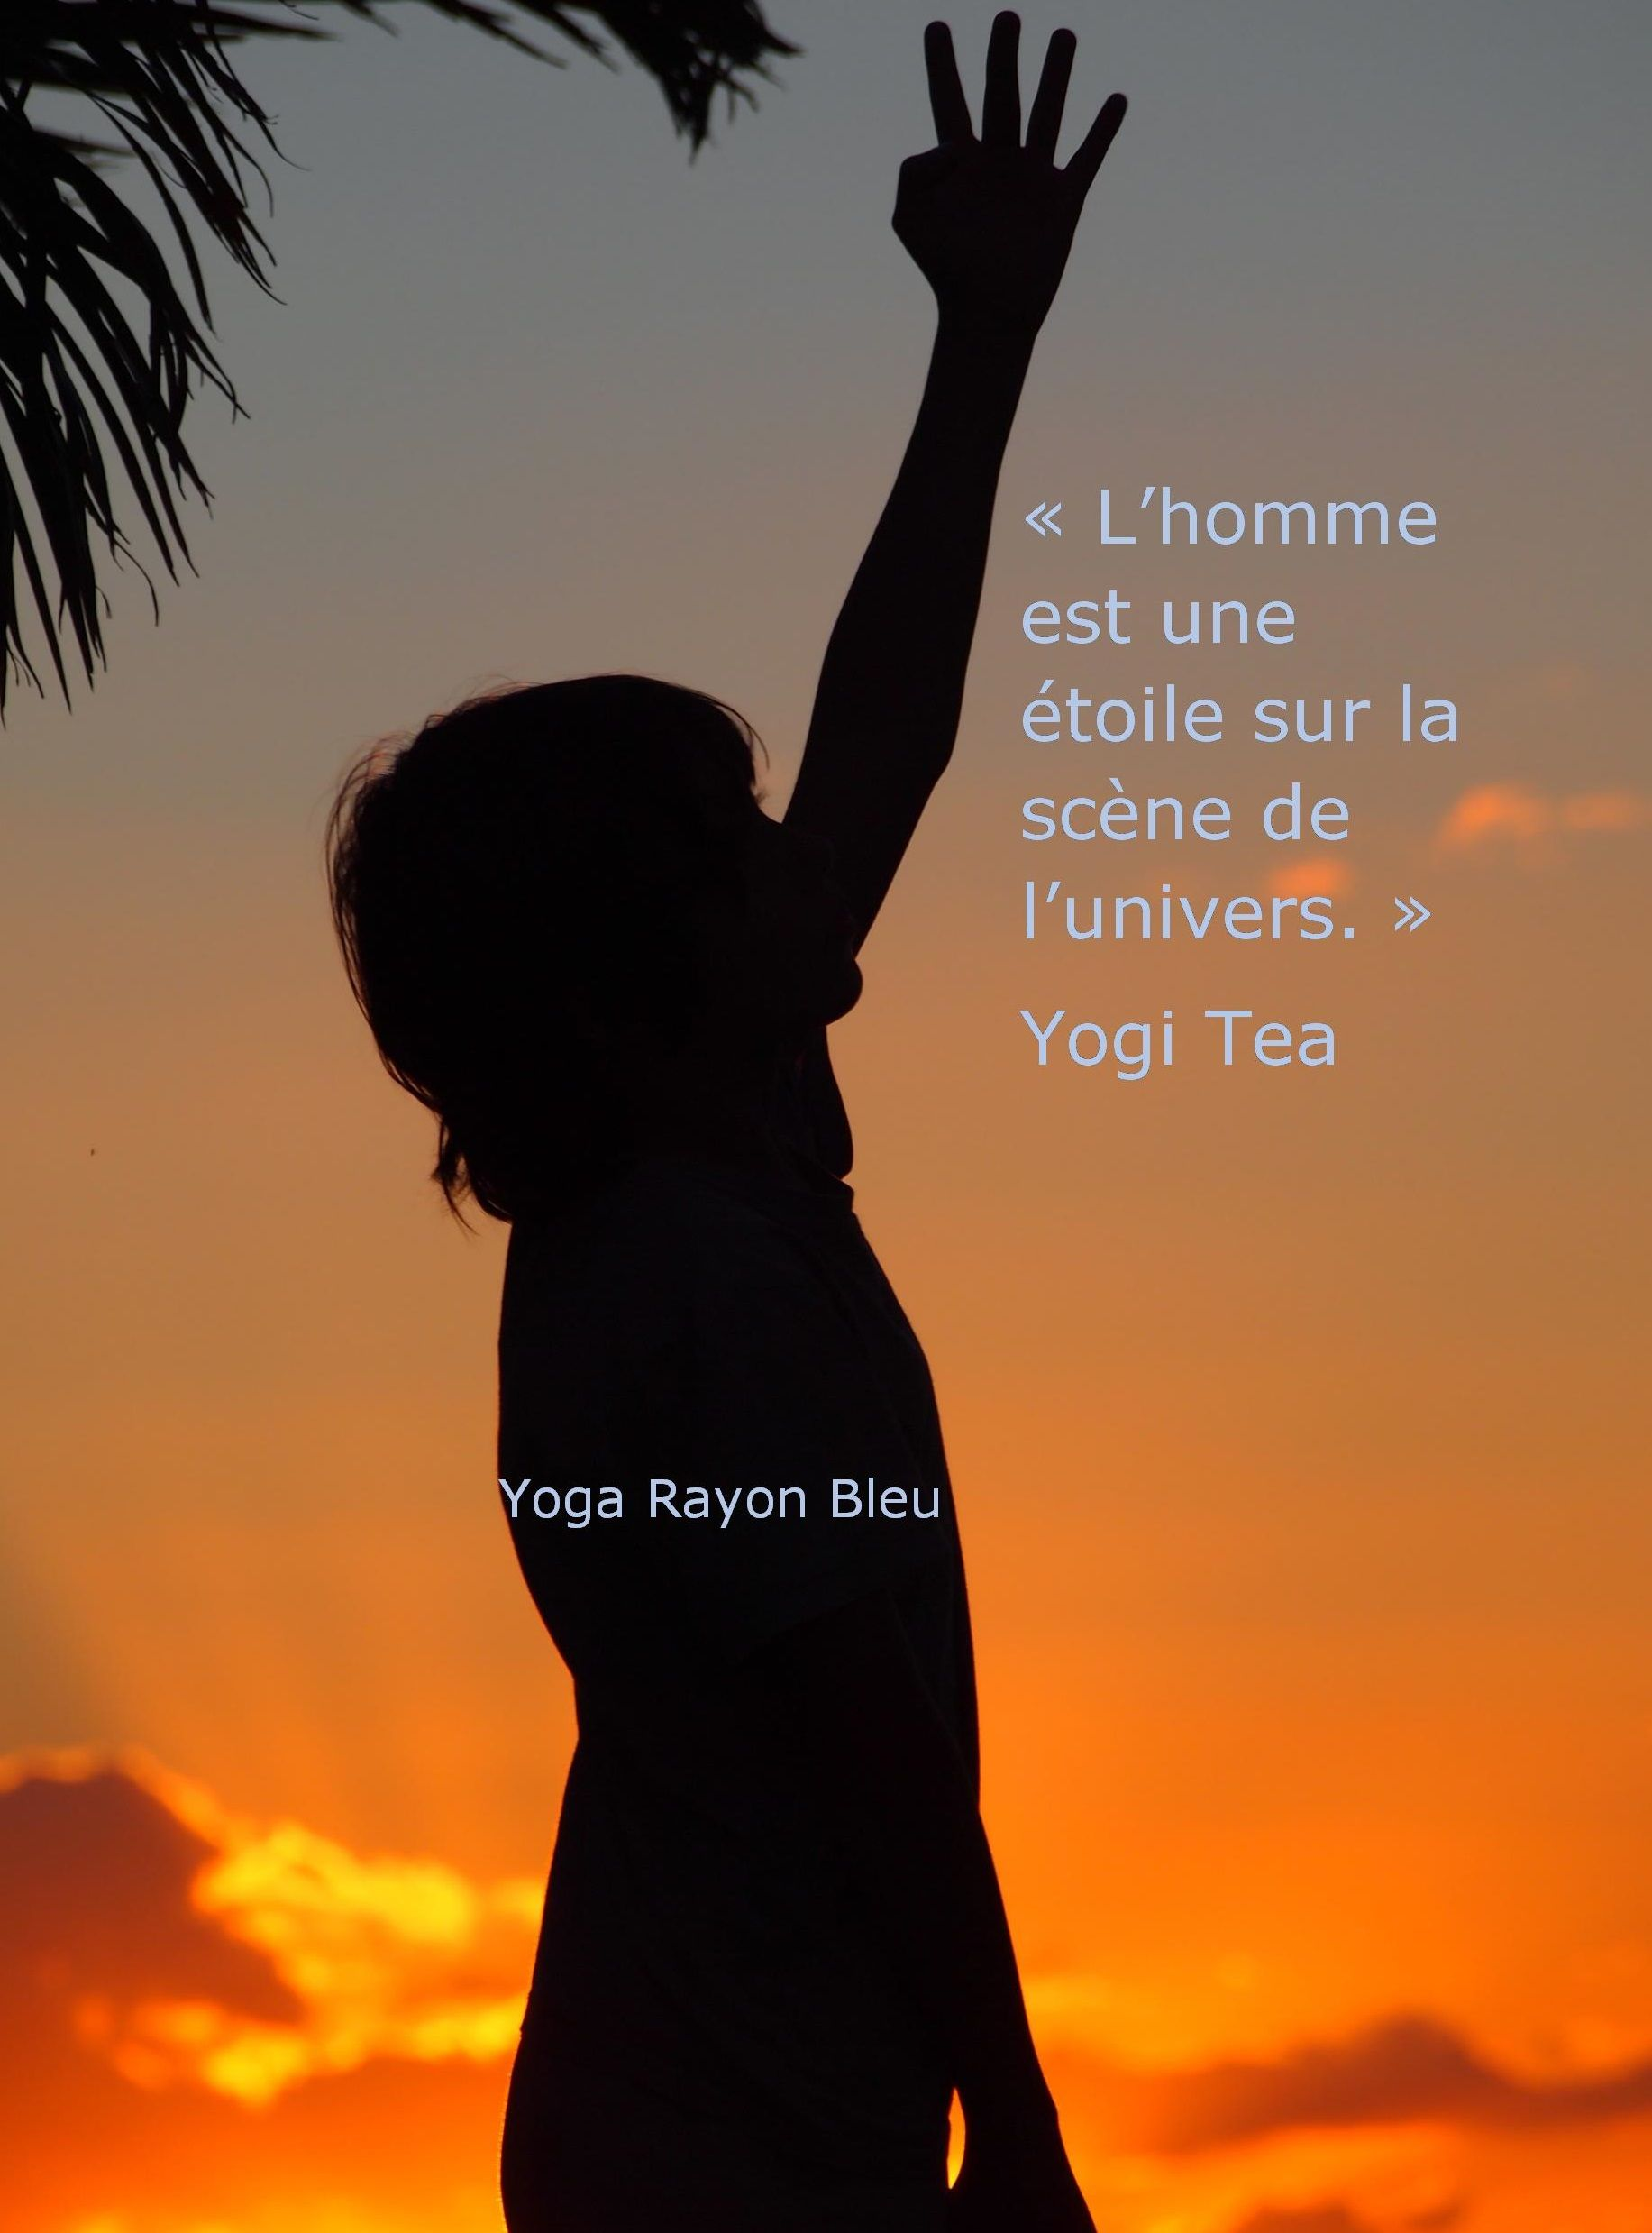 Citation Yogi Tea Photo Ile De La Reunion Yoga Rayon Bleu